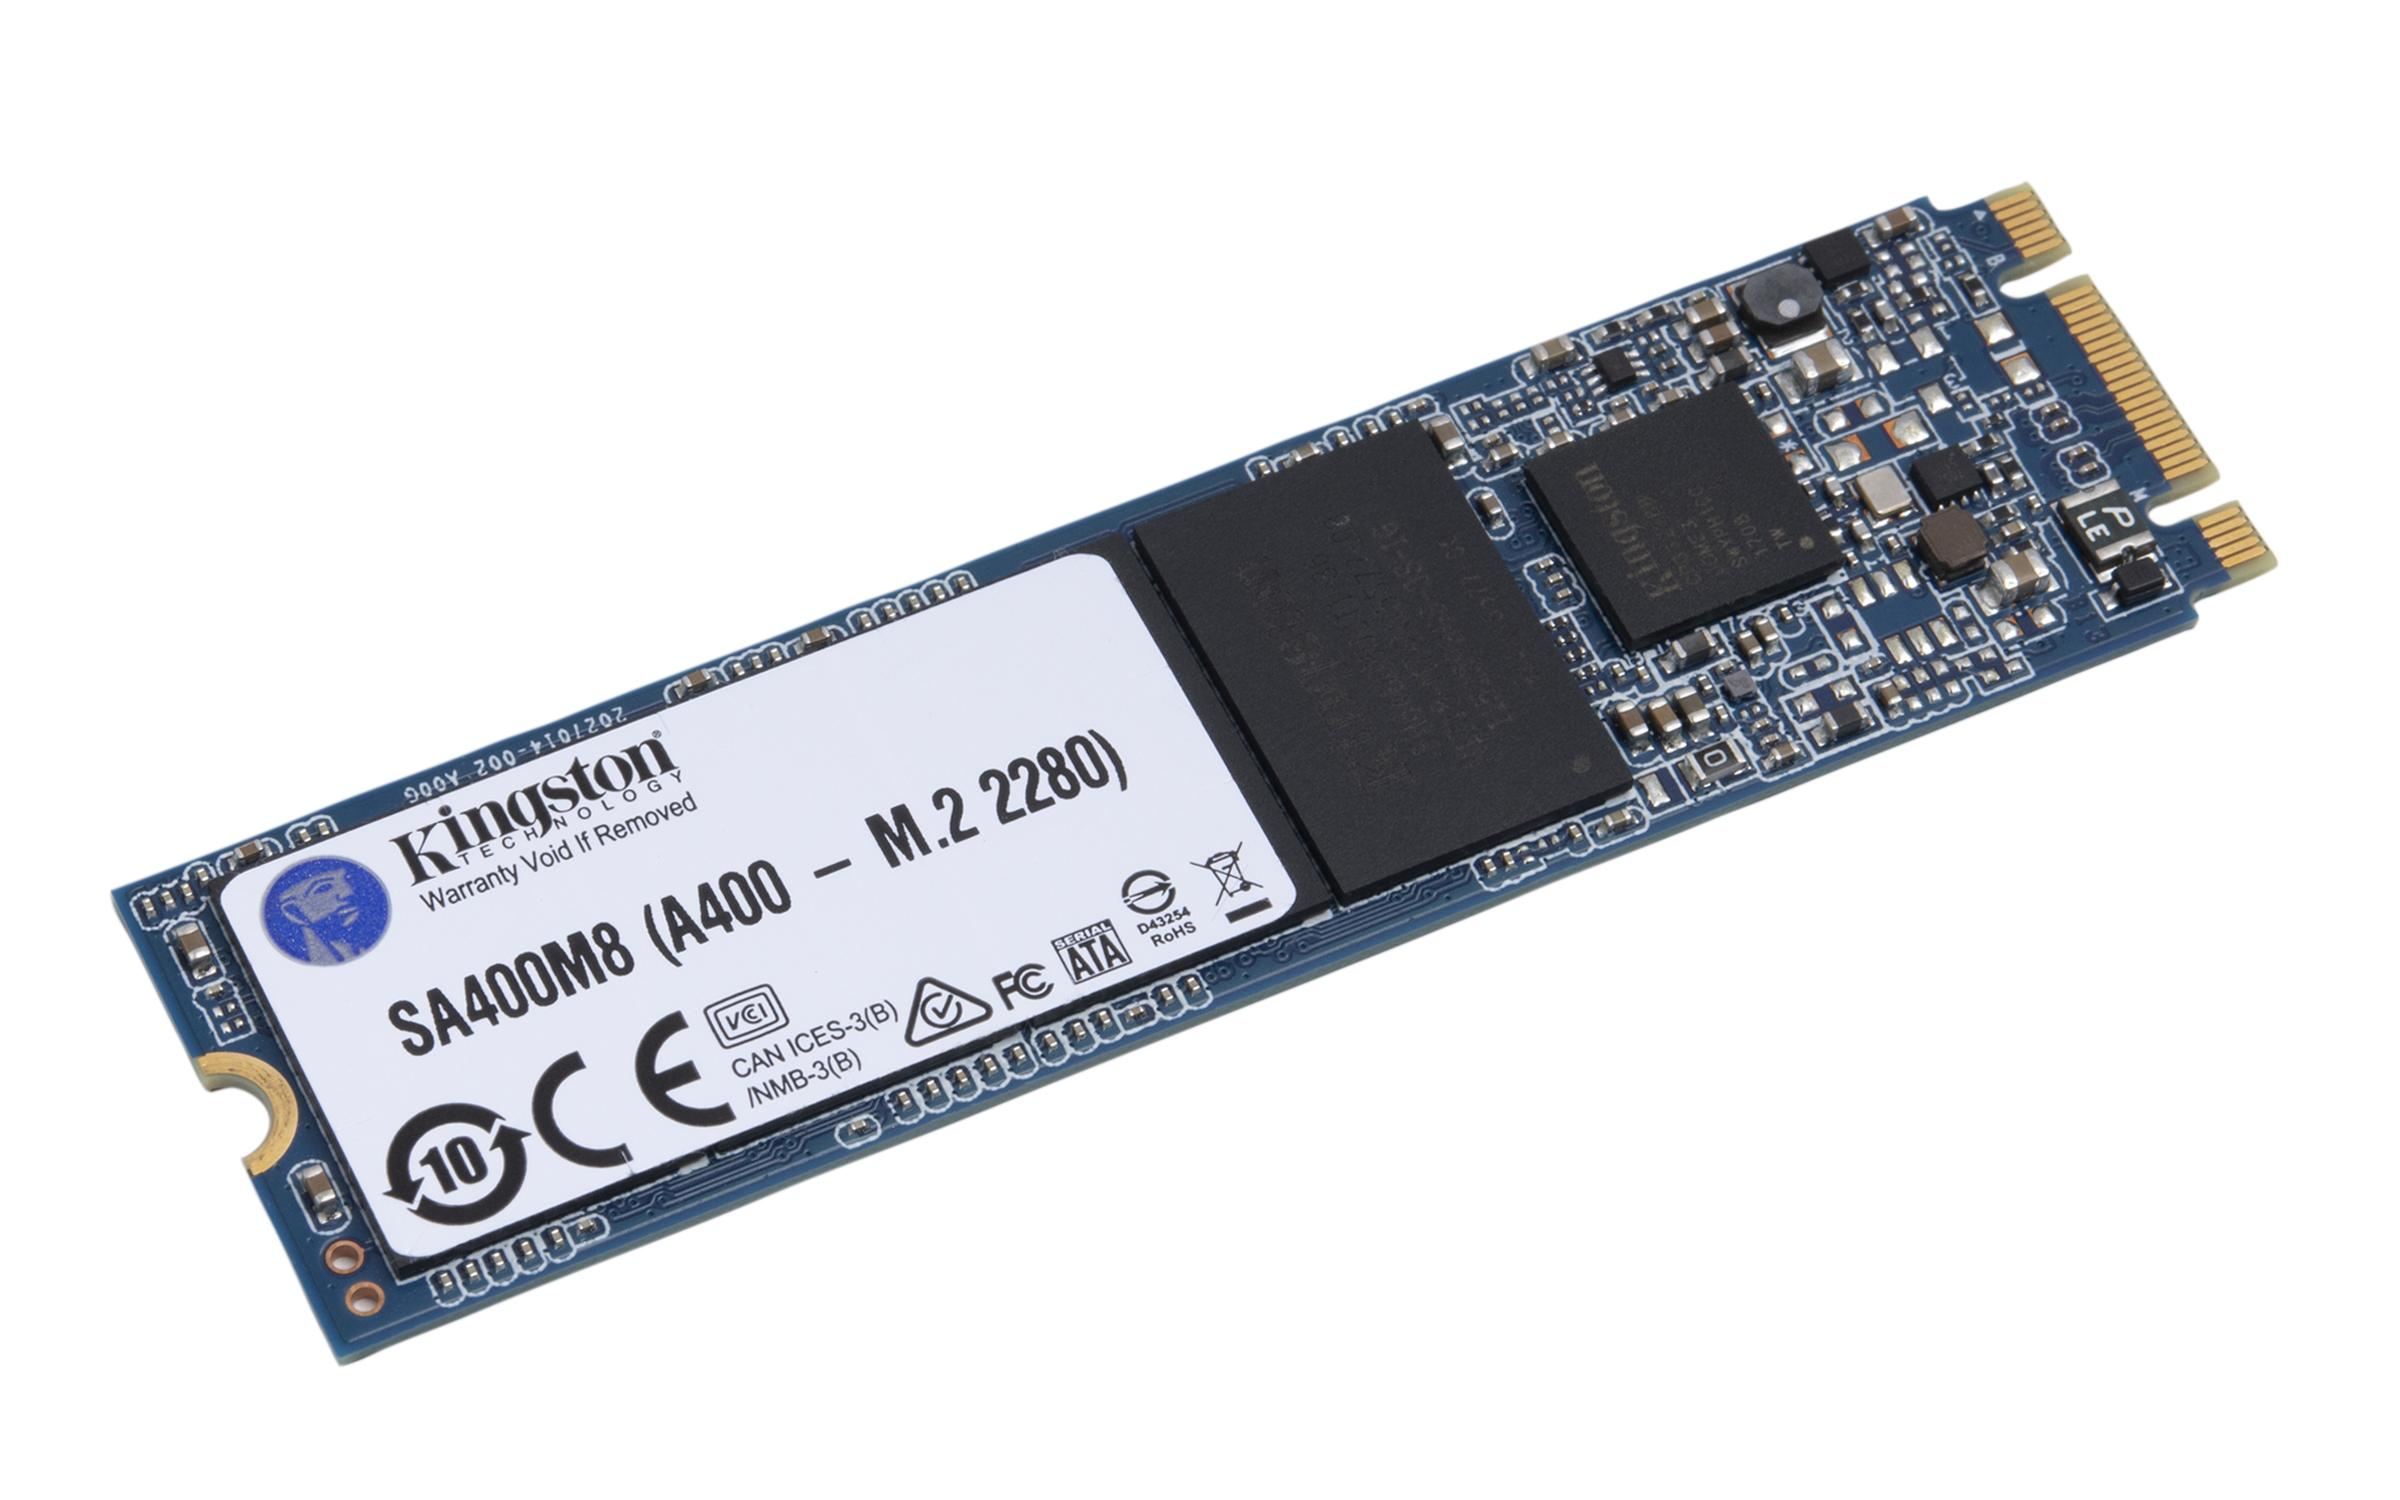 Solid State Drive (SSD) KINGSTON A400, m.2 2280, 120GB-2